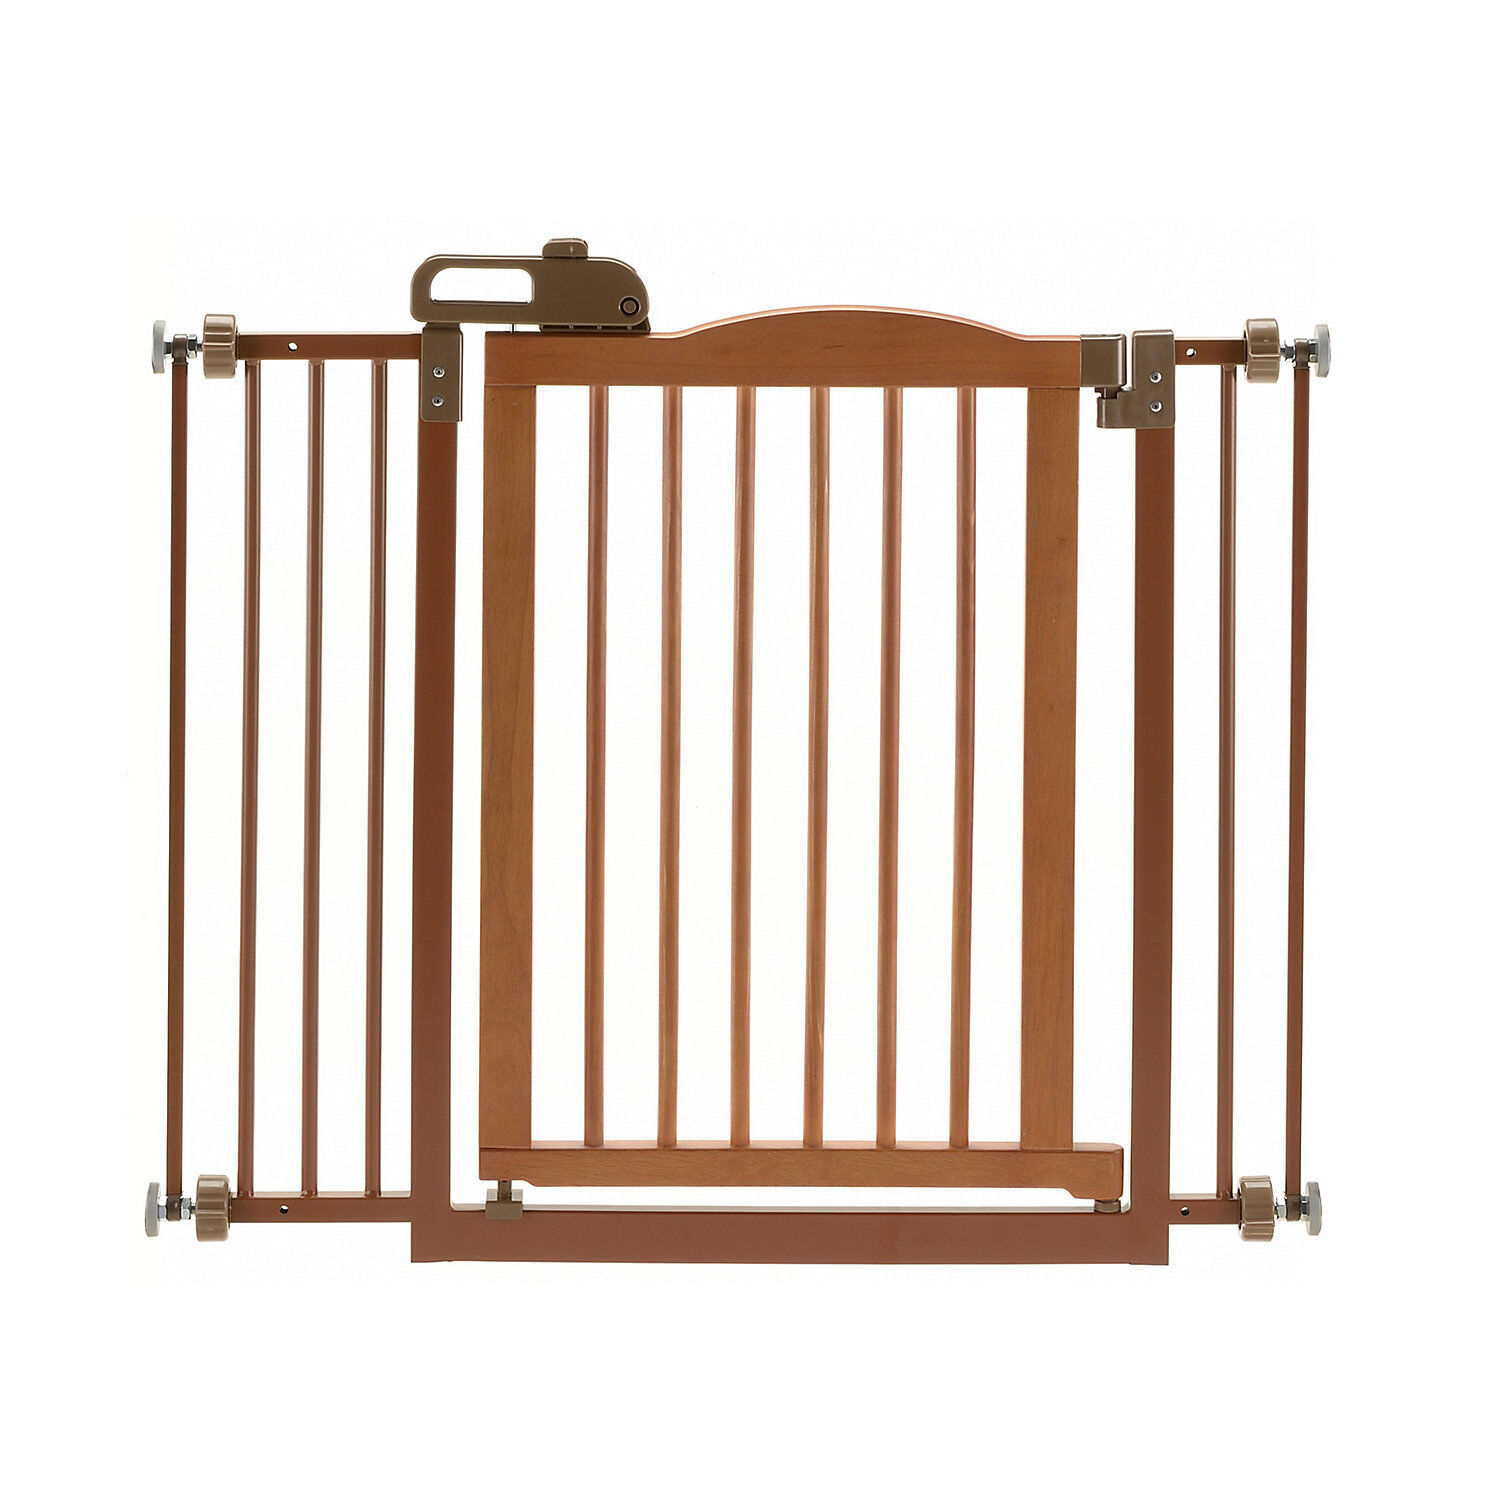 Richell OneTouch Brown Pet Gate II, 36.4 x 30.5 x 2